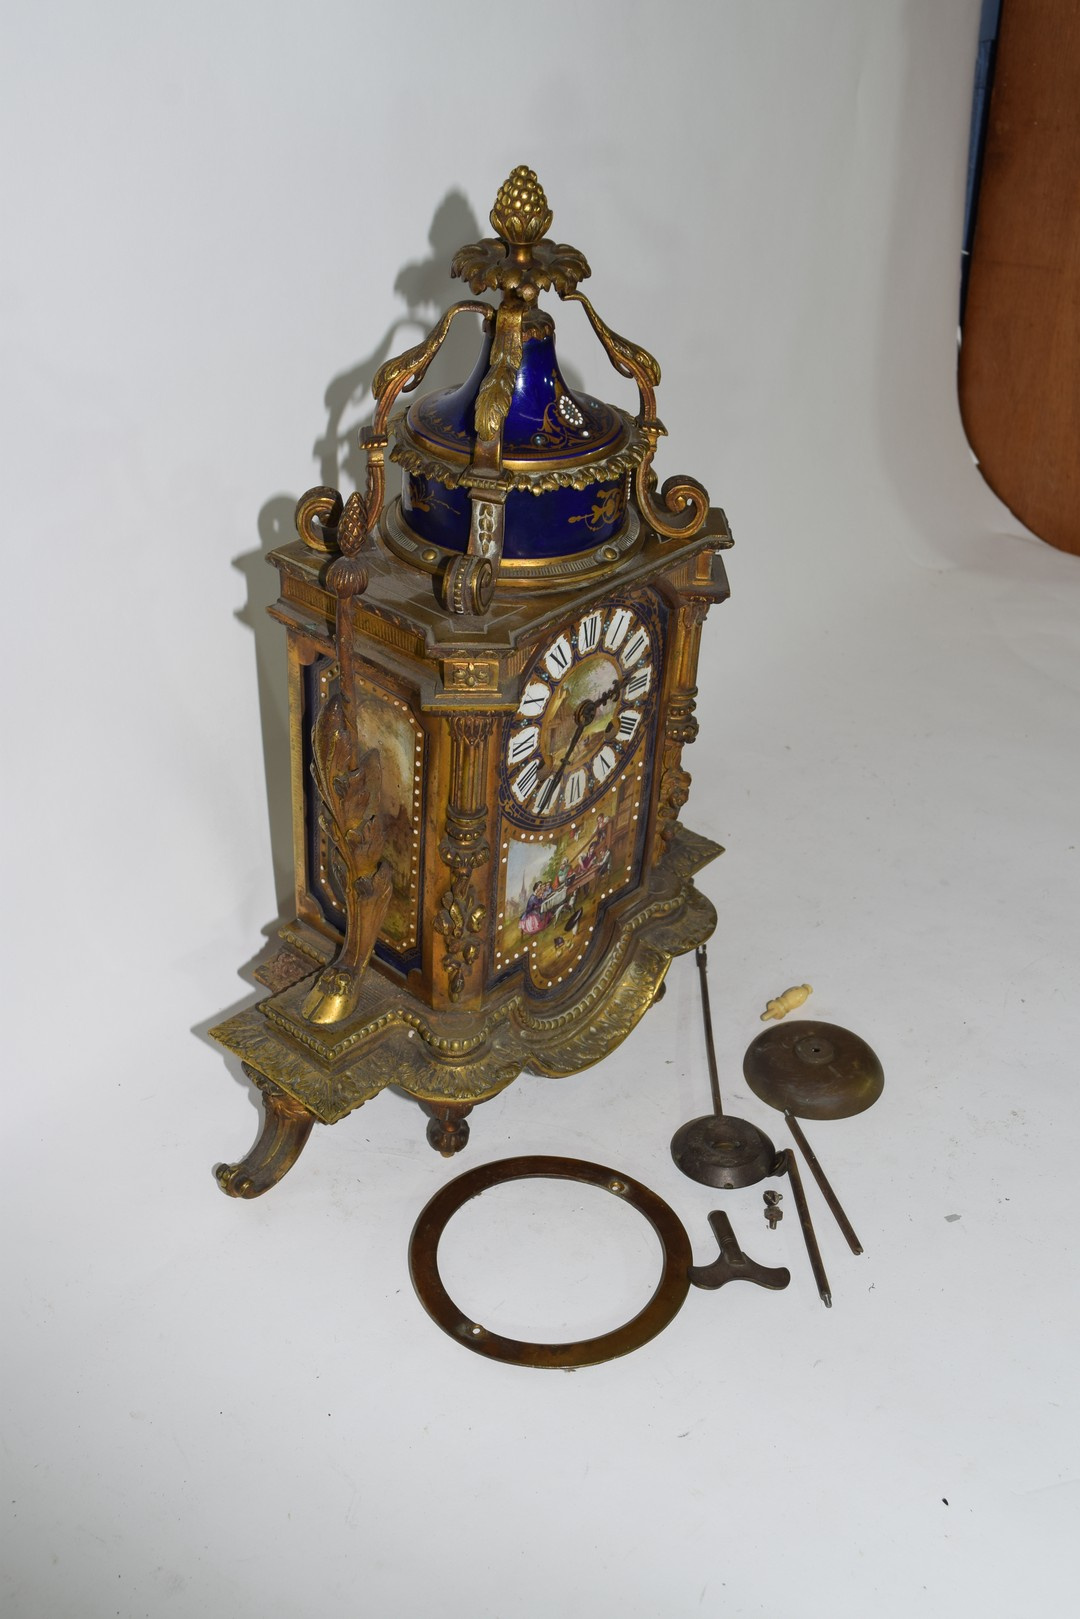 19th century French gilt metal clock with Sevres type porcelain panels - Image 4 of 5